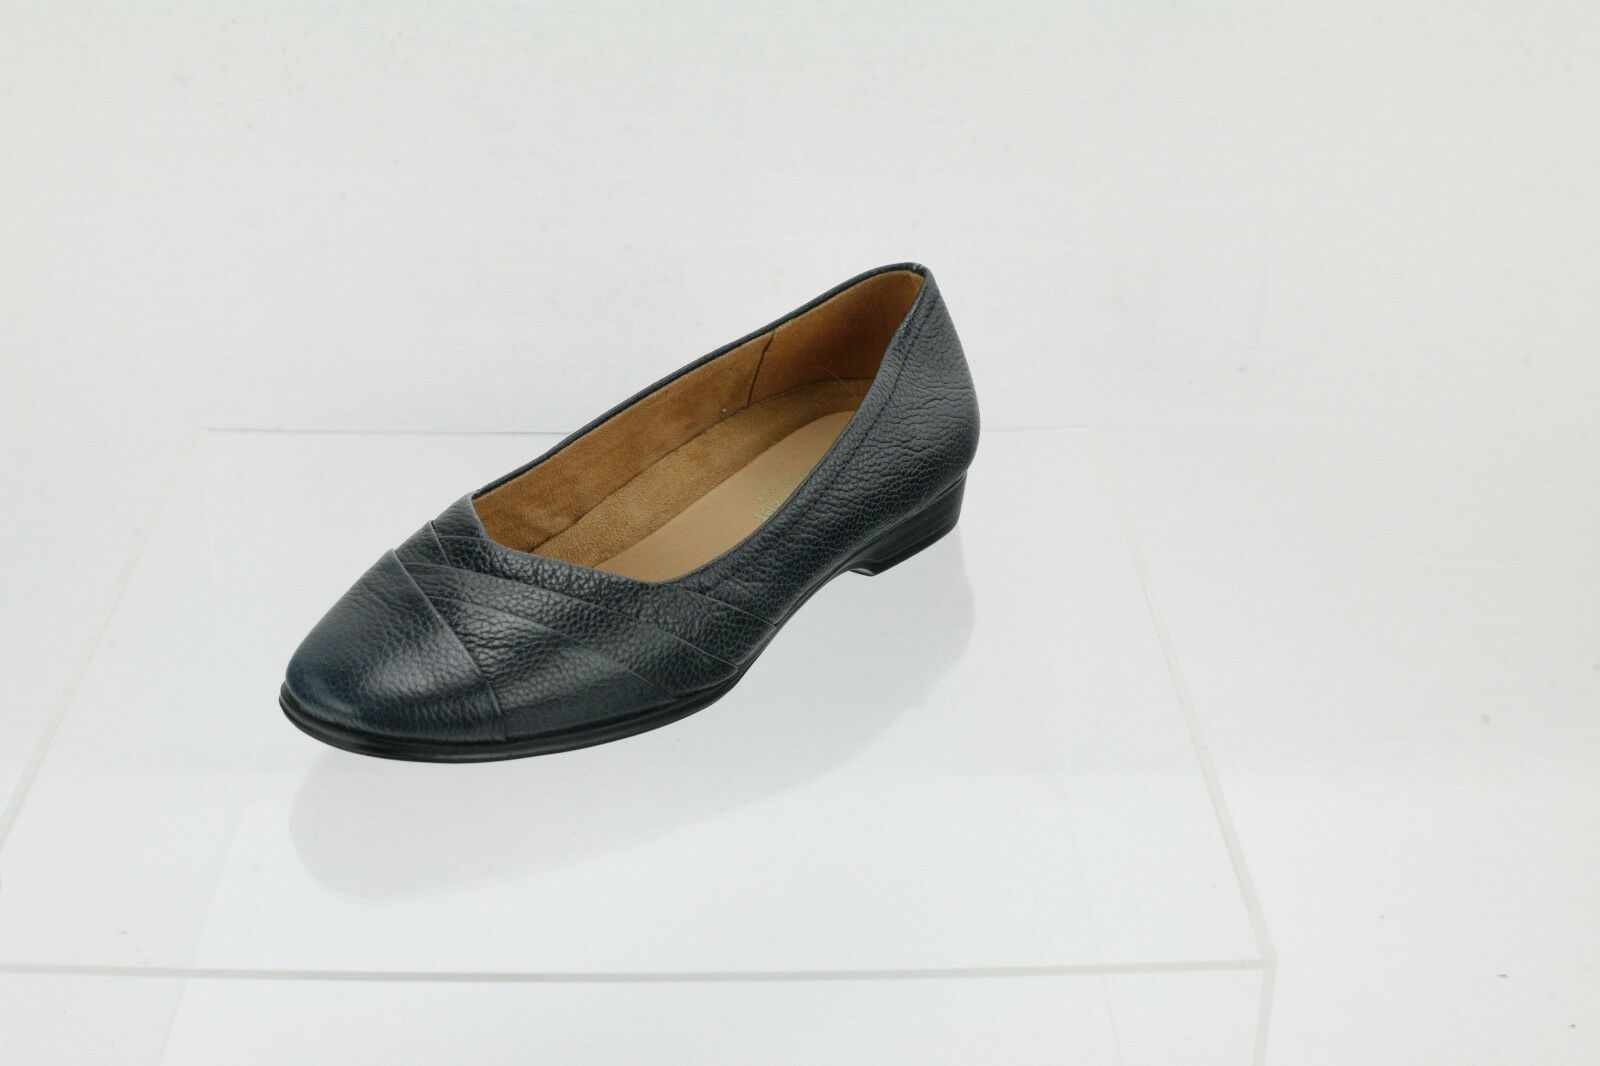 Naturalizer Jaye Navy Lea Leather Slip-on Flats Women's shoes Size 6 W